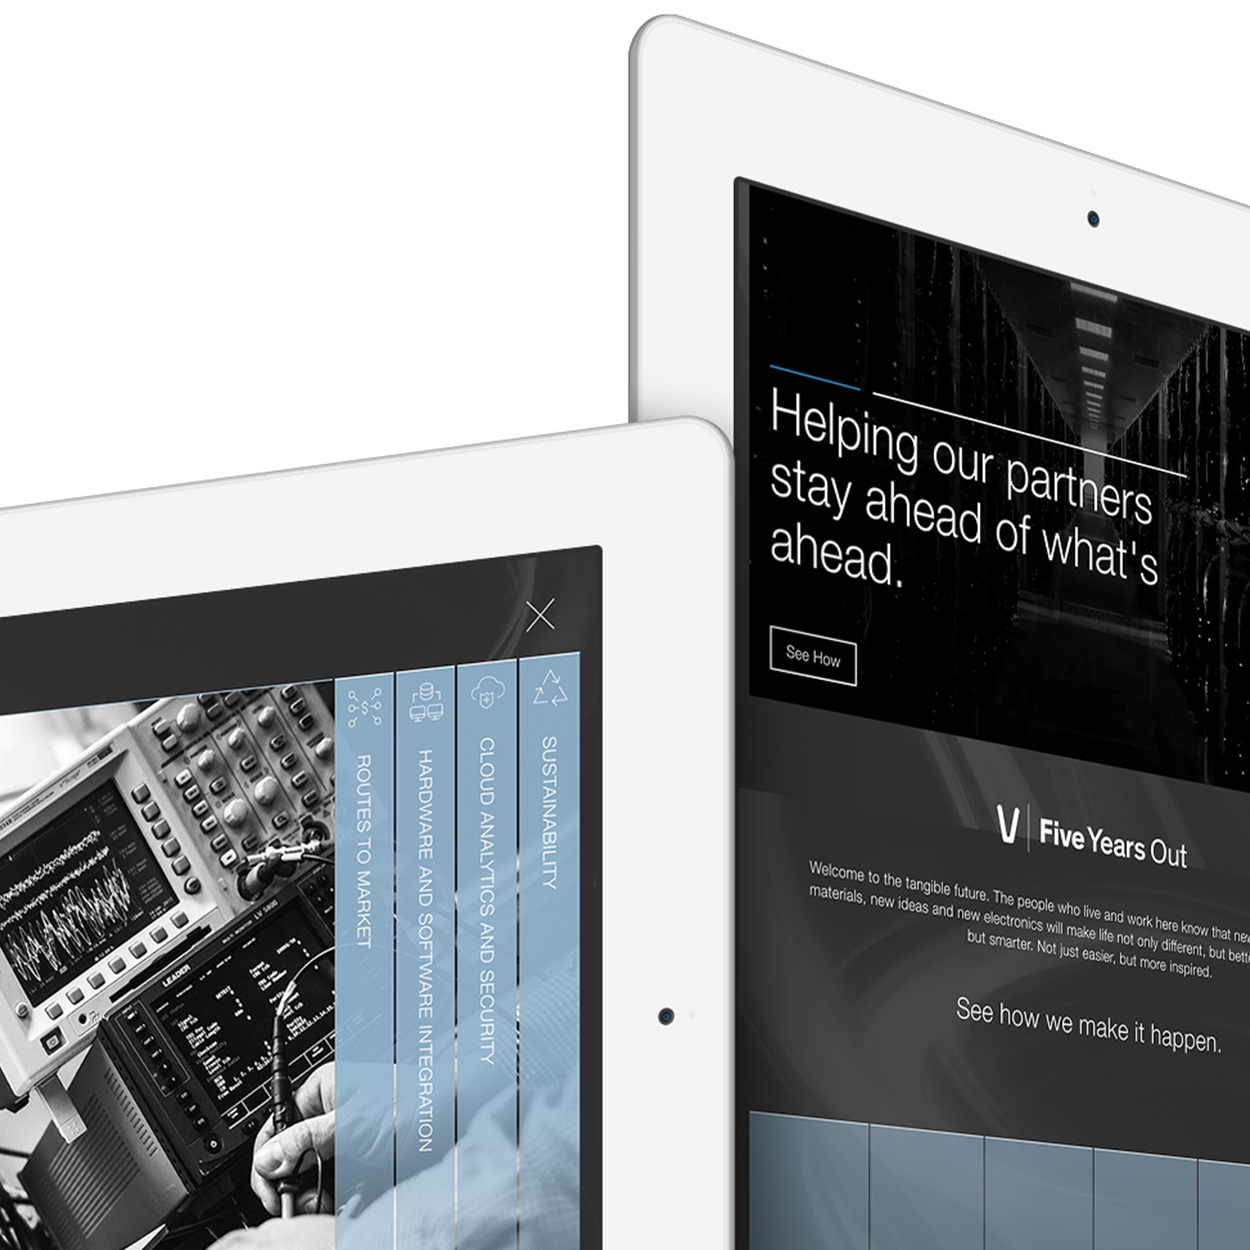 The Five Years Out website displayed across two iPads.